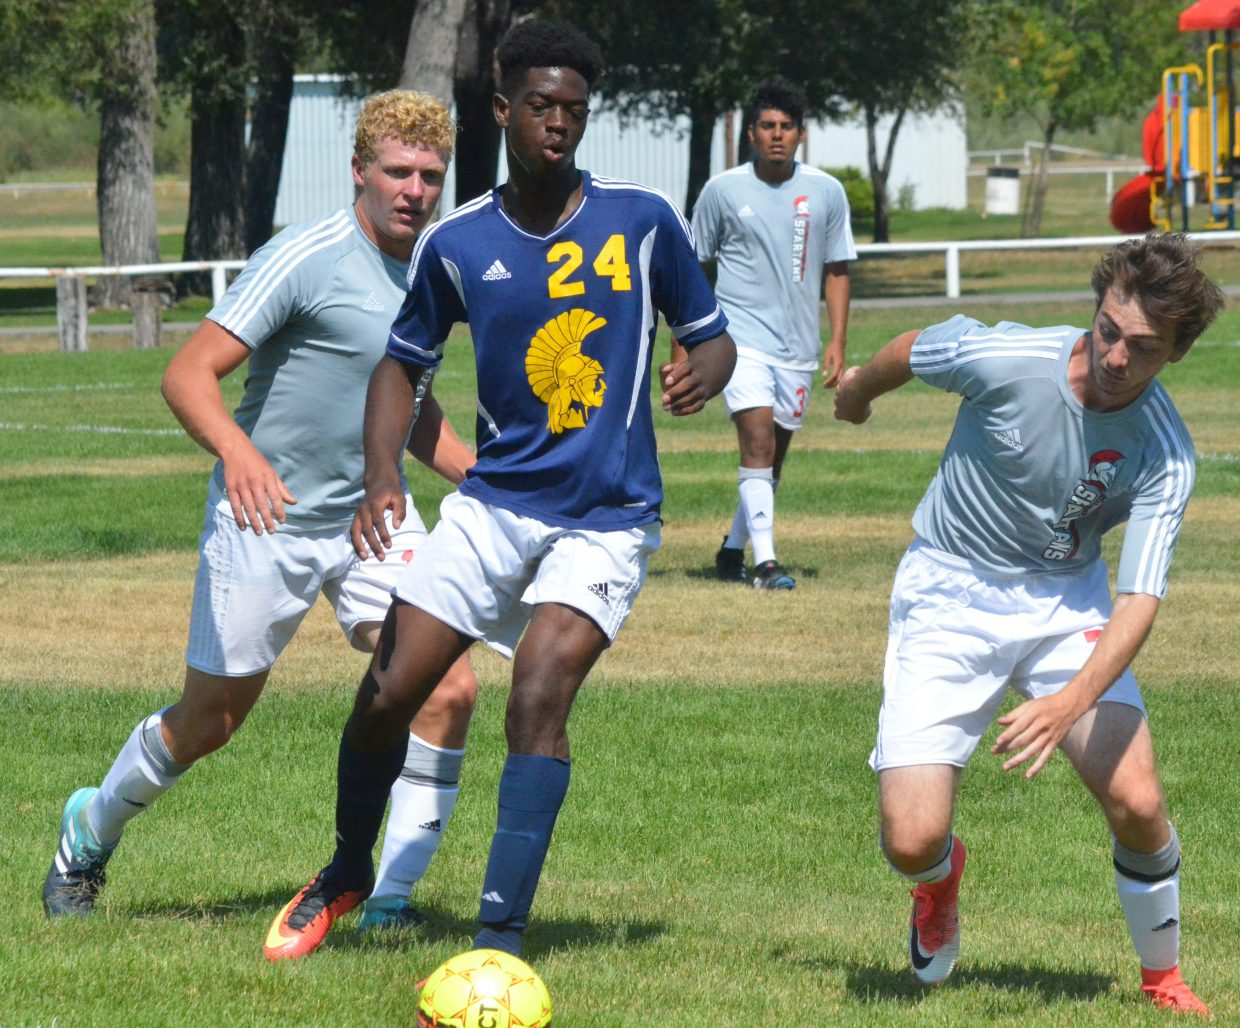 Colorado Northwestern Community College men's soccer players Logan Hopkins, left, and Michael Ross Vanhara double-team their opponent during a game against Trinidad State Junior College. CNCC men fell 5-0 to the Trojans.